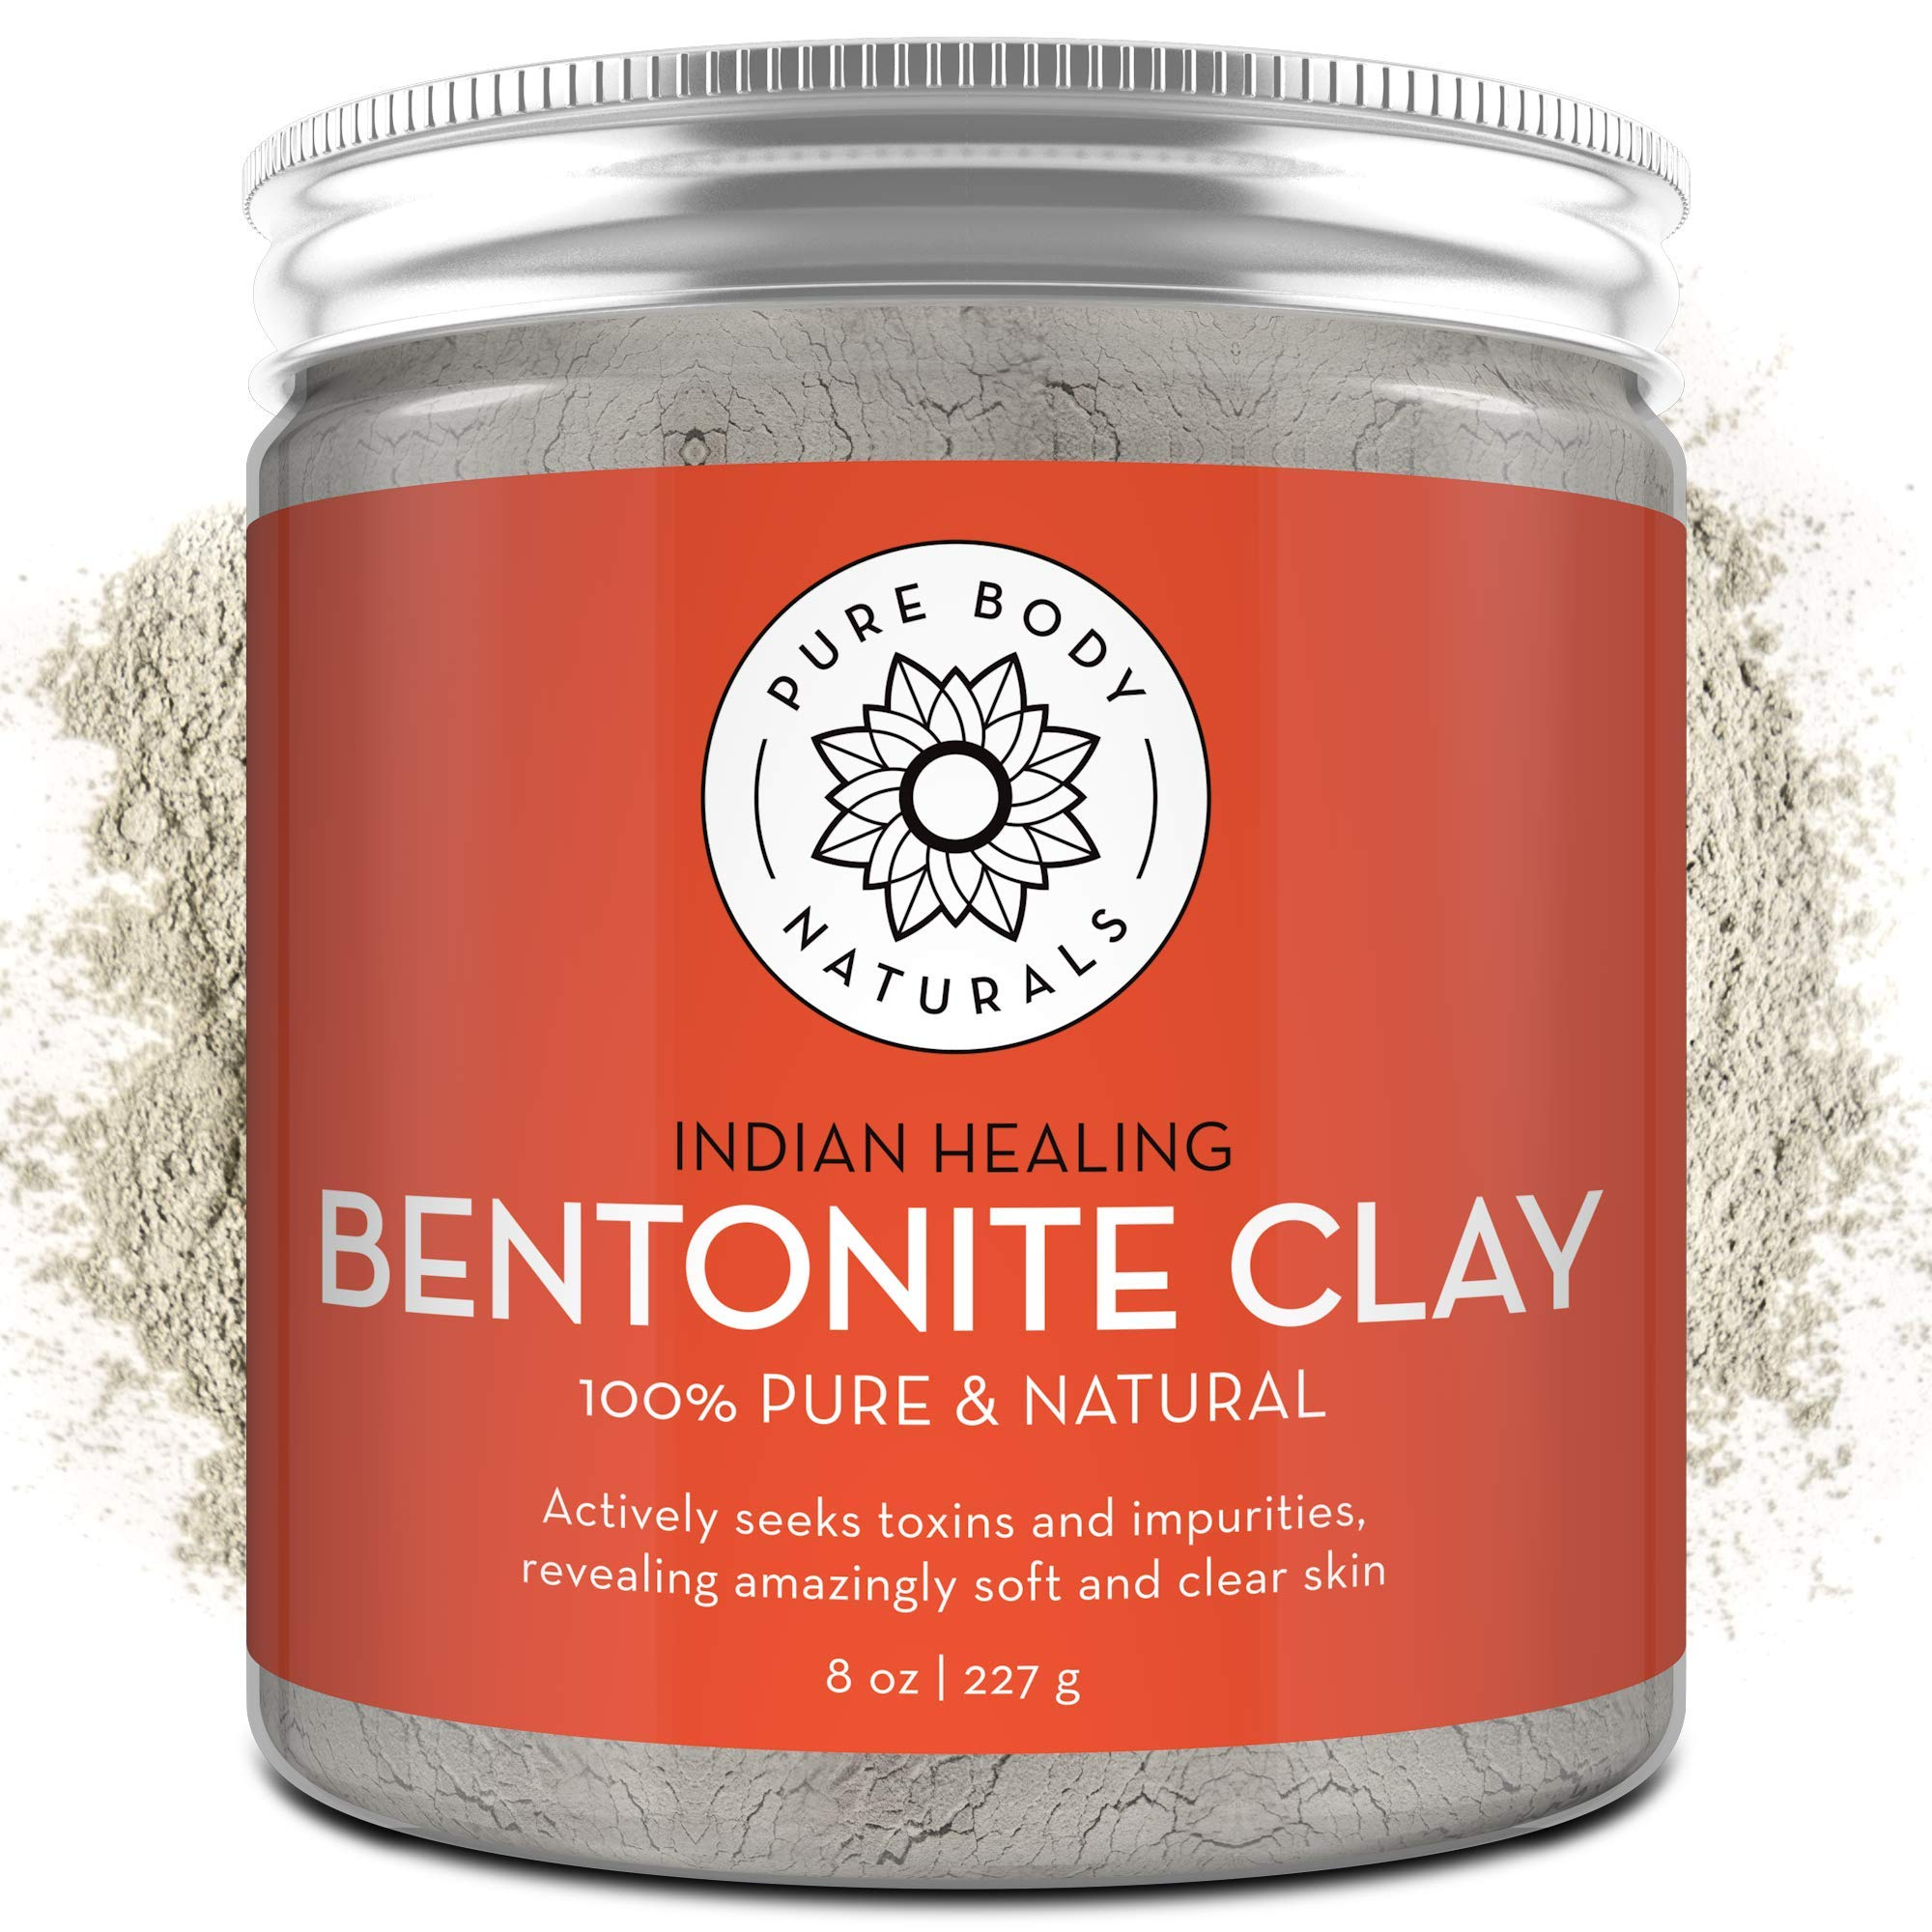 Pure Bentonite Powder for DIY Detox Bath & Facial Mask, Pure Indian Healing Clay for Burns, Mastitis, Inflamed or Chapped Skin (8.0 oz) - Pure Body Naturals